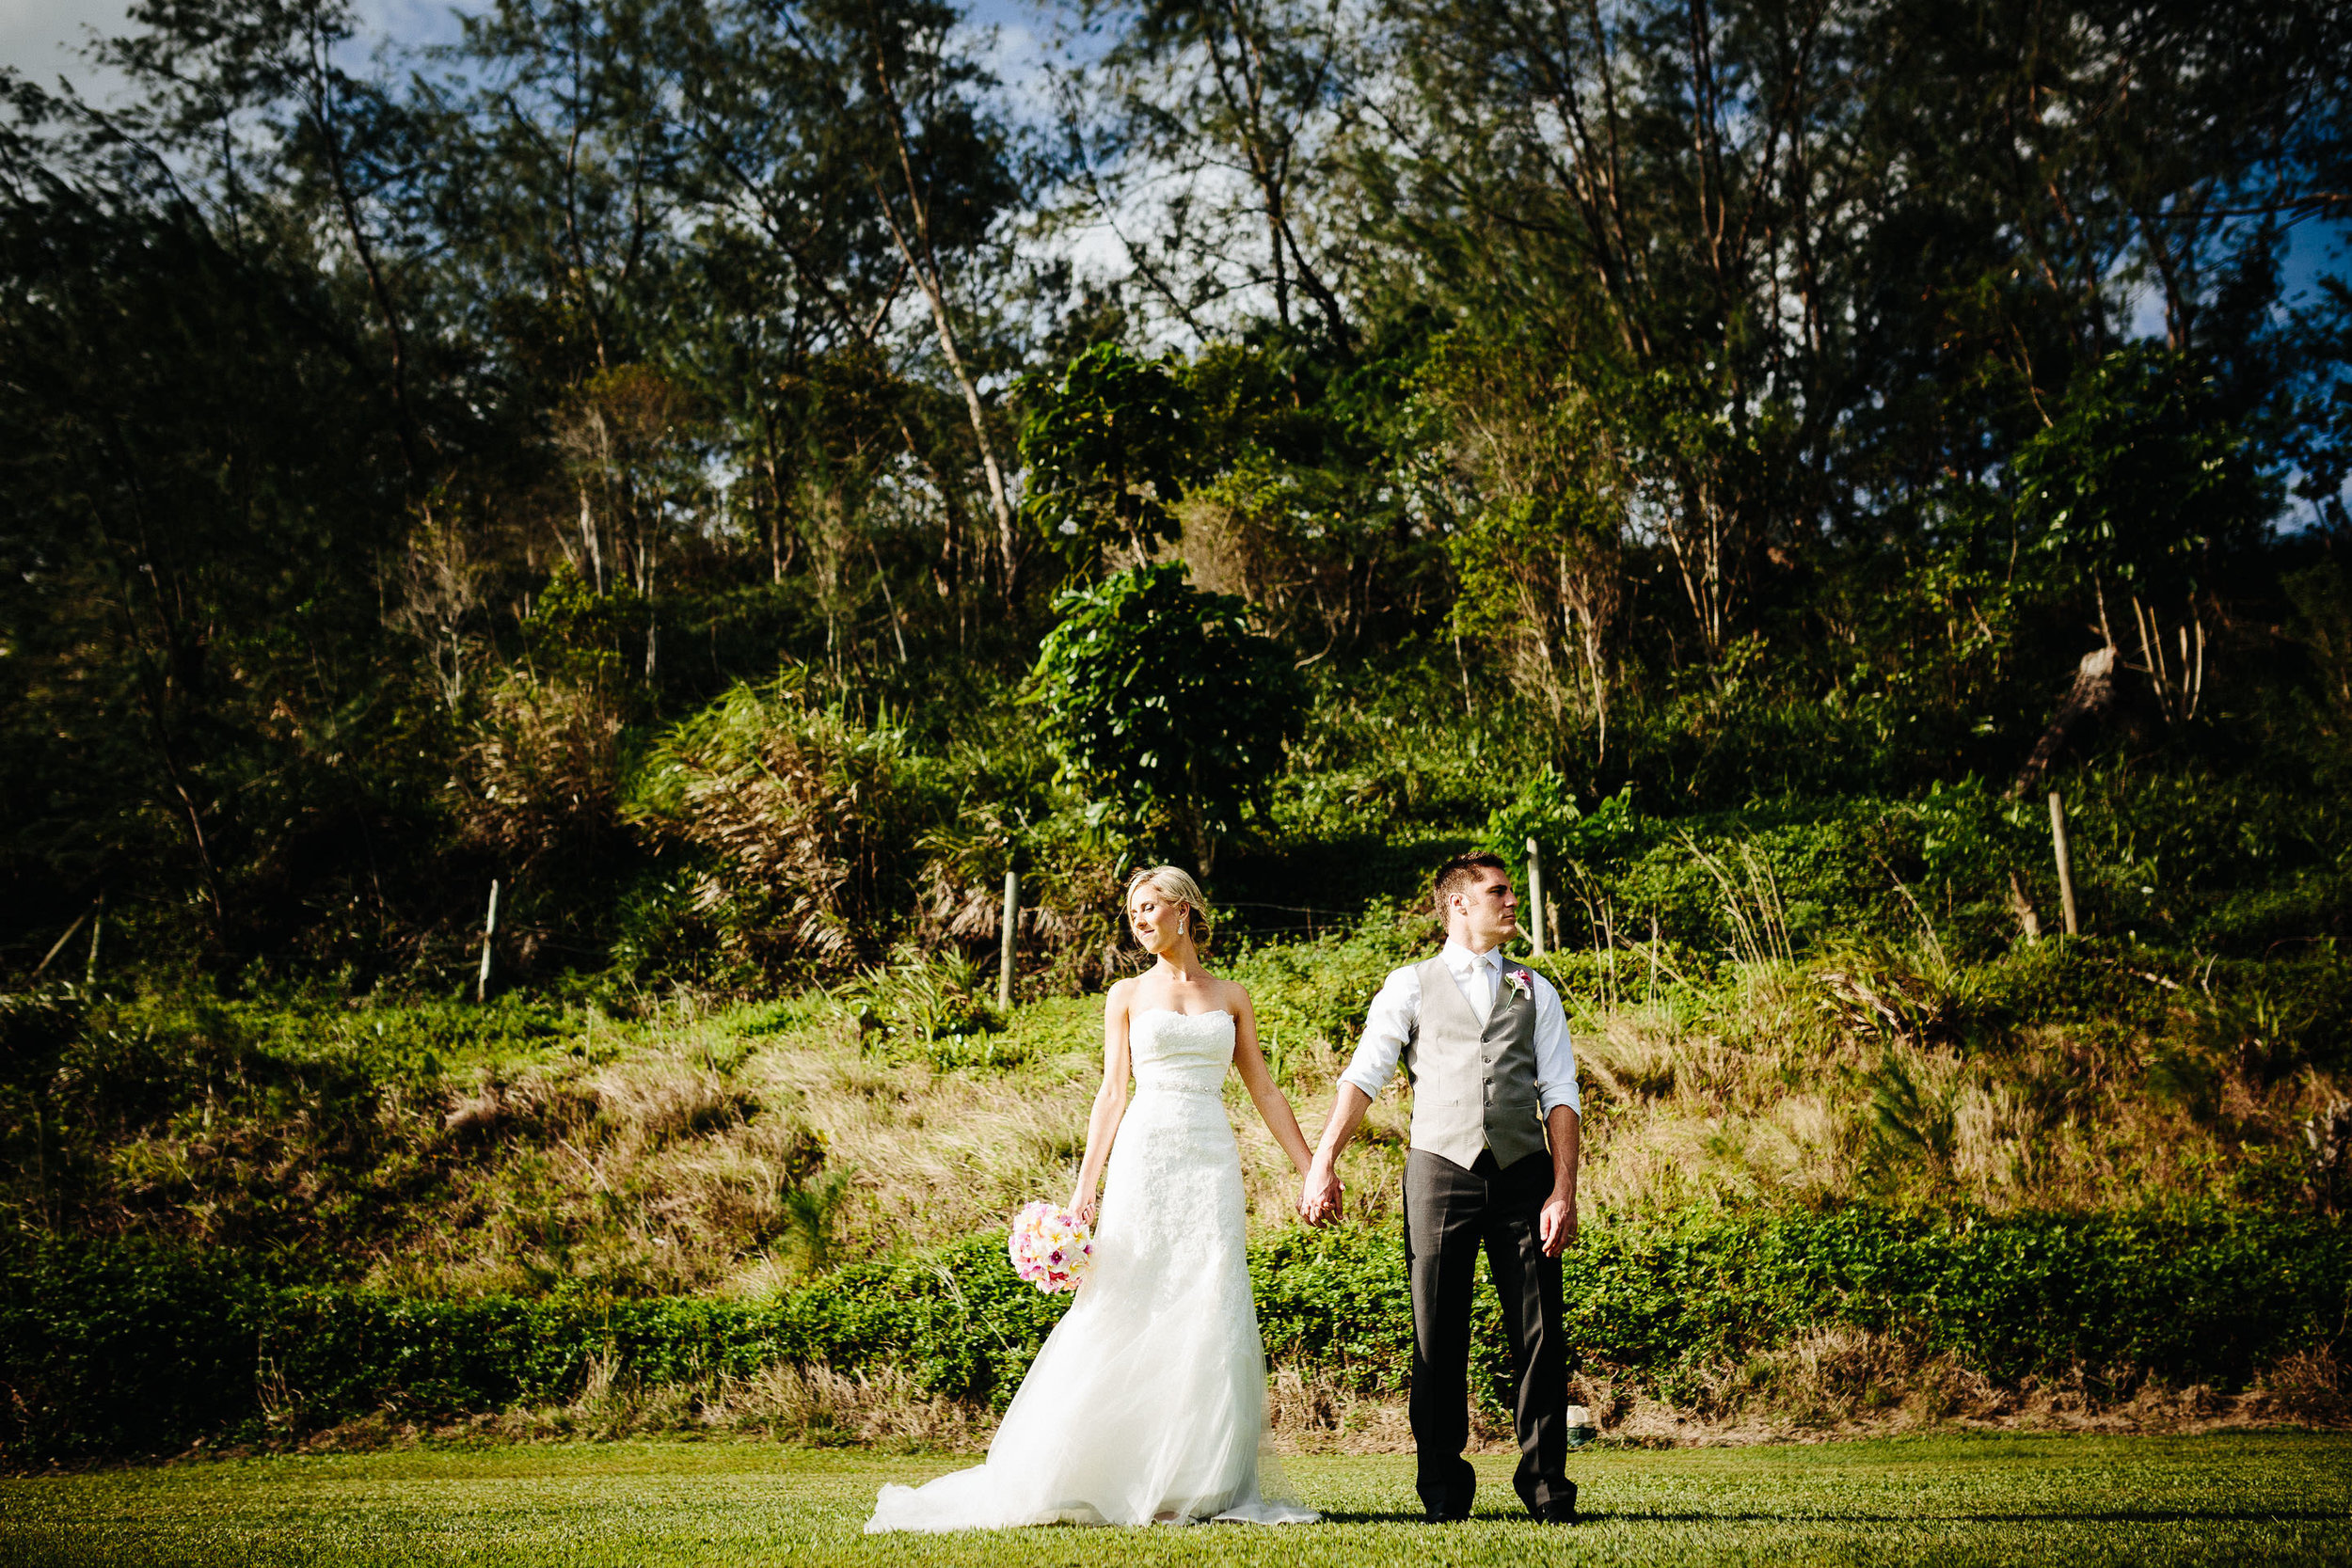 The newlyweds standing in a field